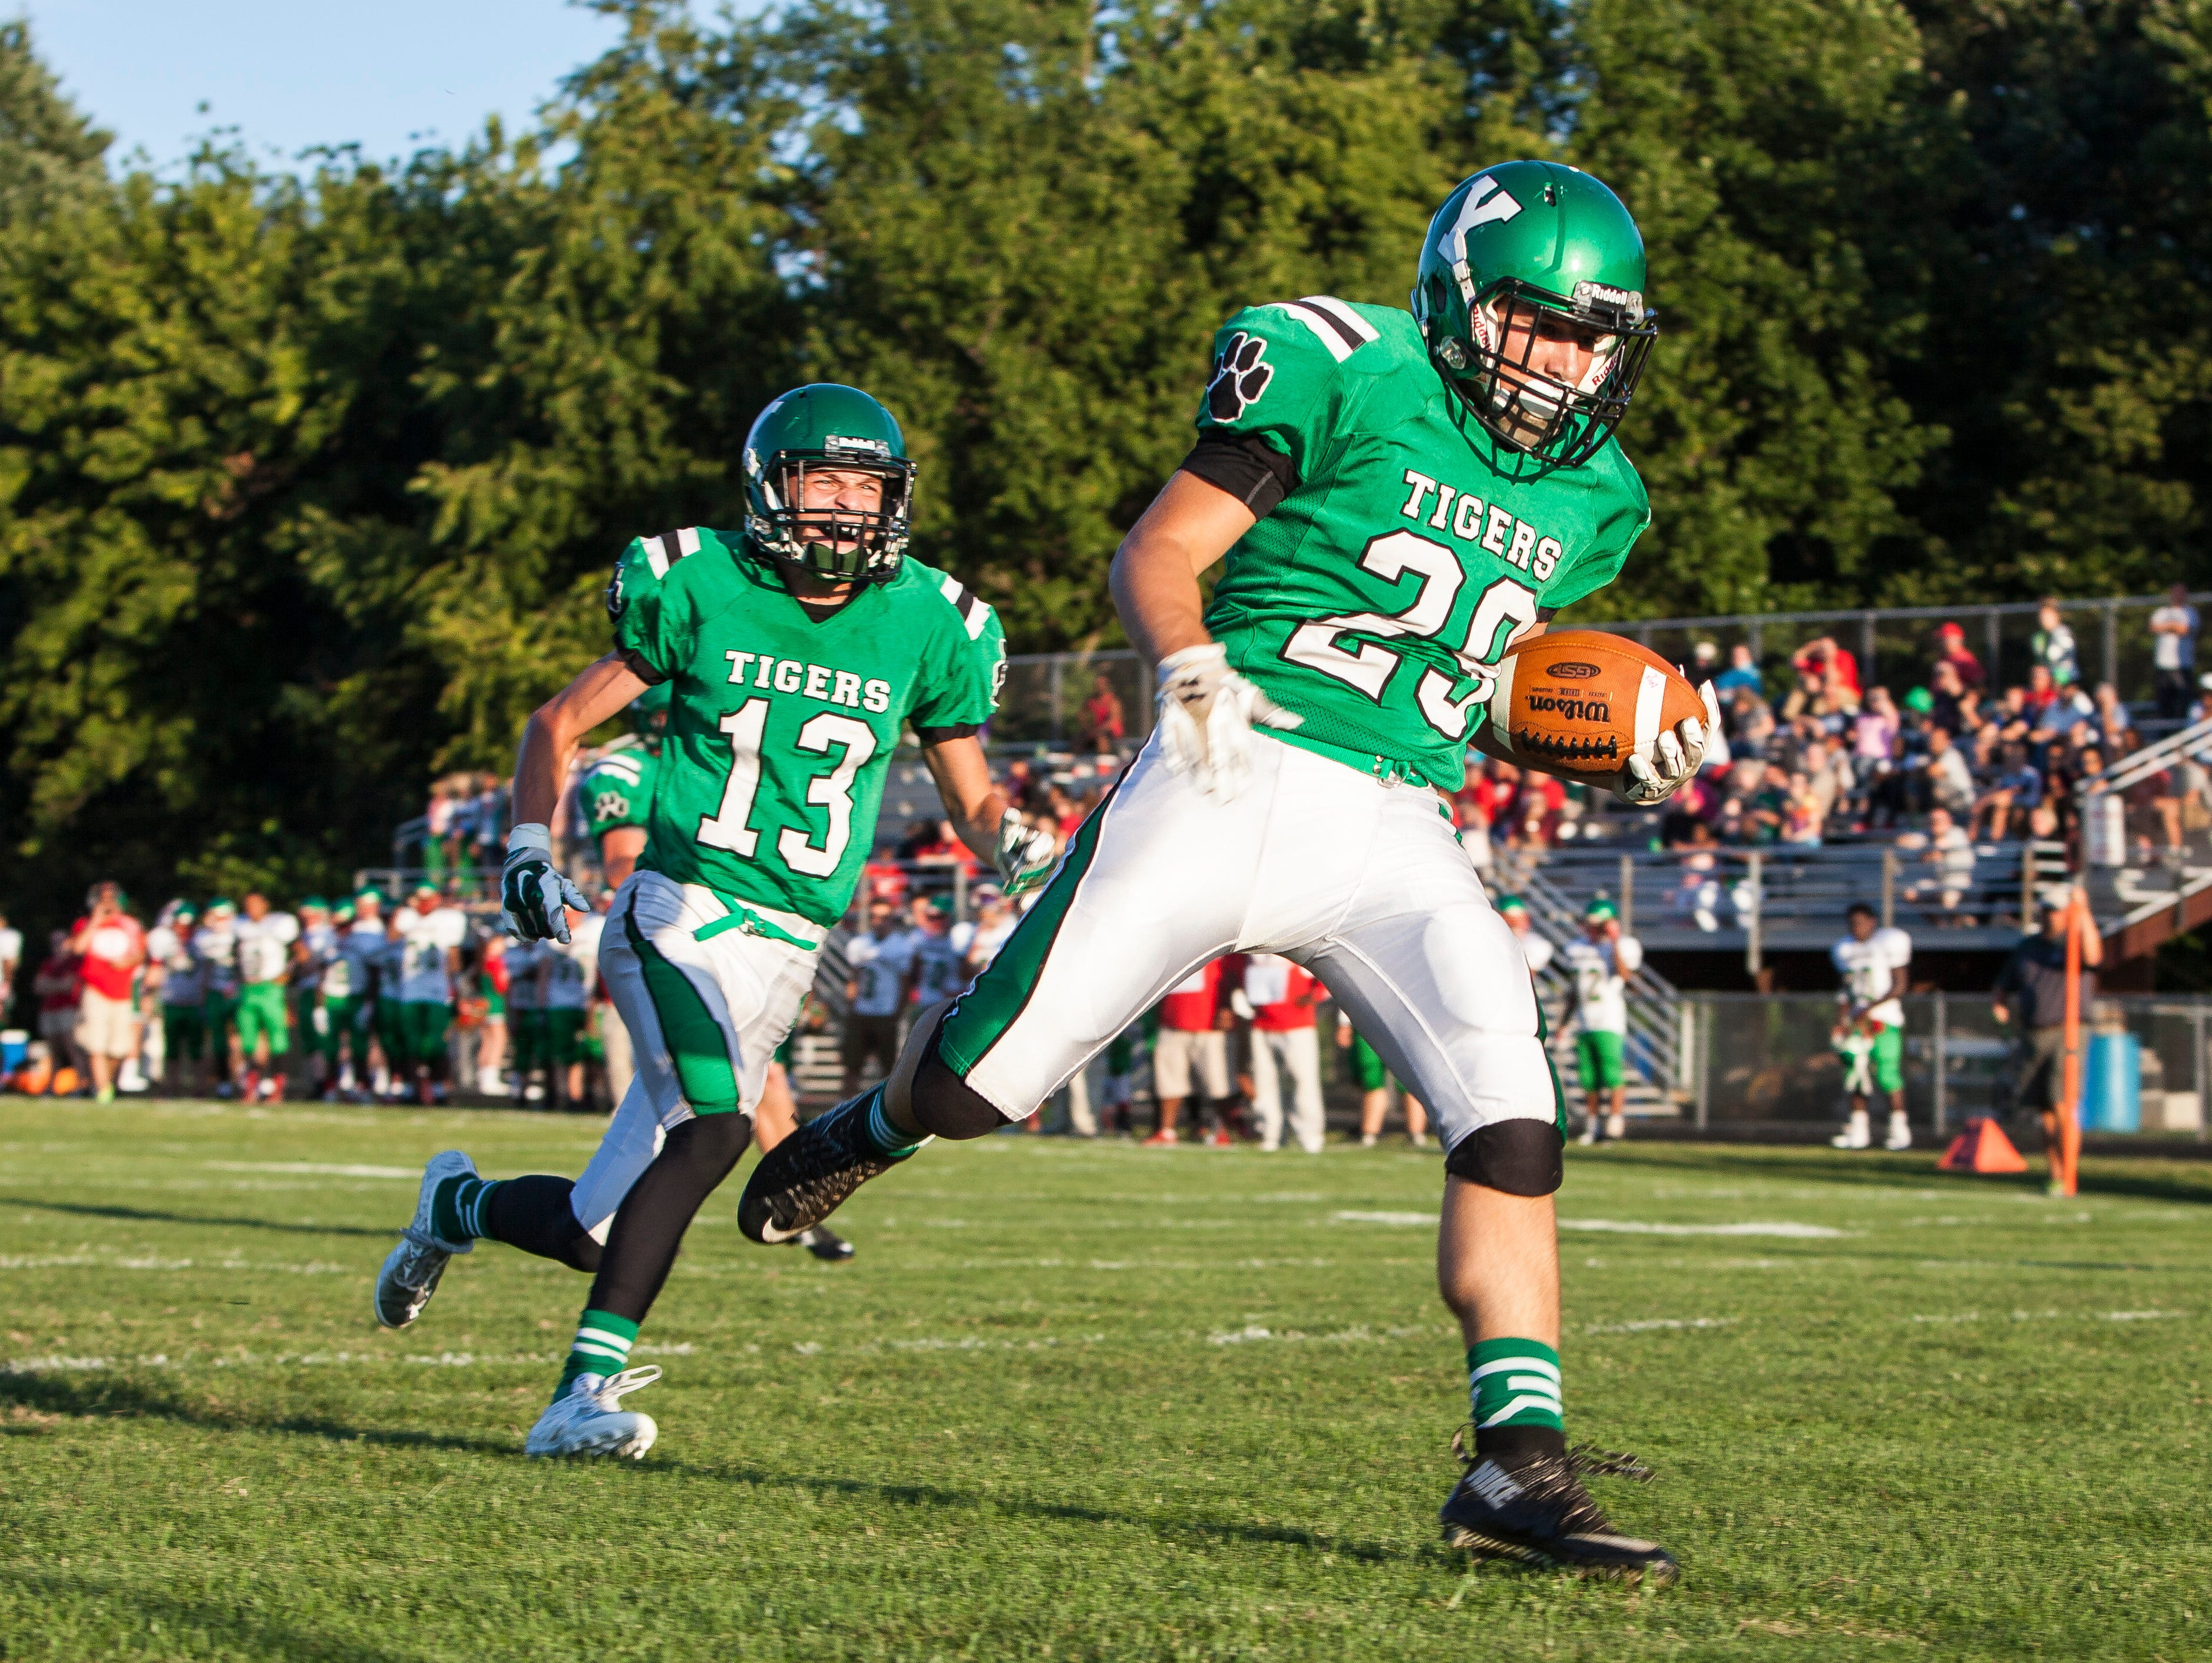 Yorktown's Jordan Spangler runs the ball in for a touchdown early in the first quarter on Friday during the home game against Anderson.